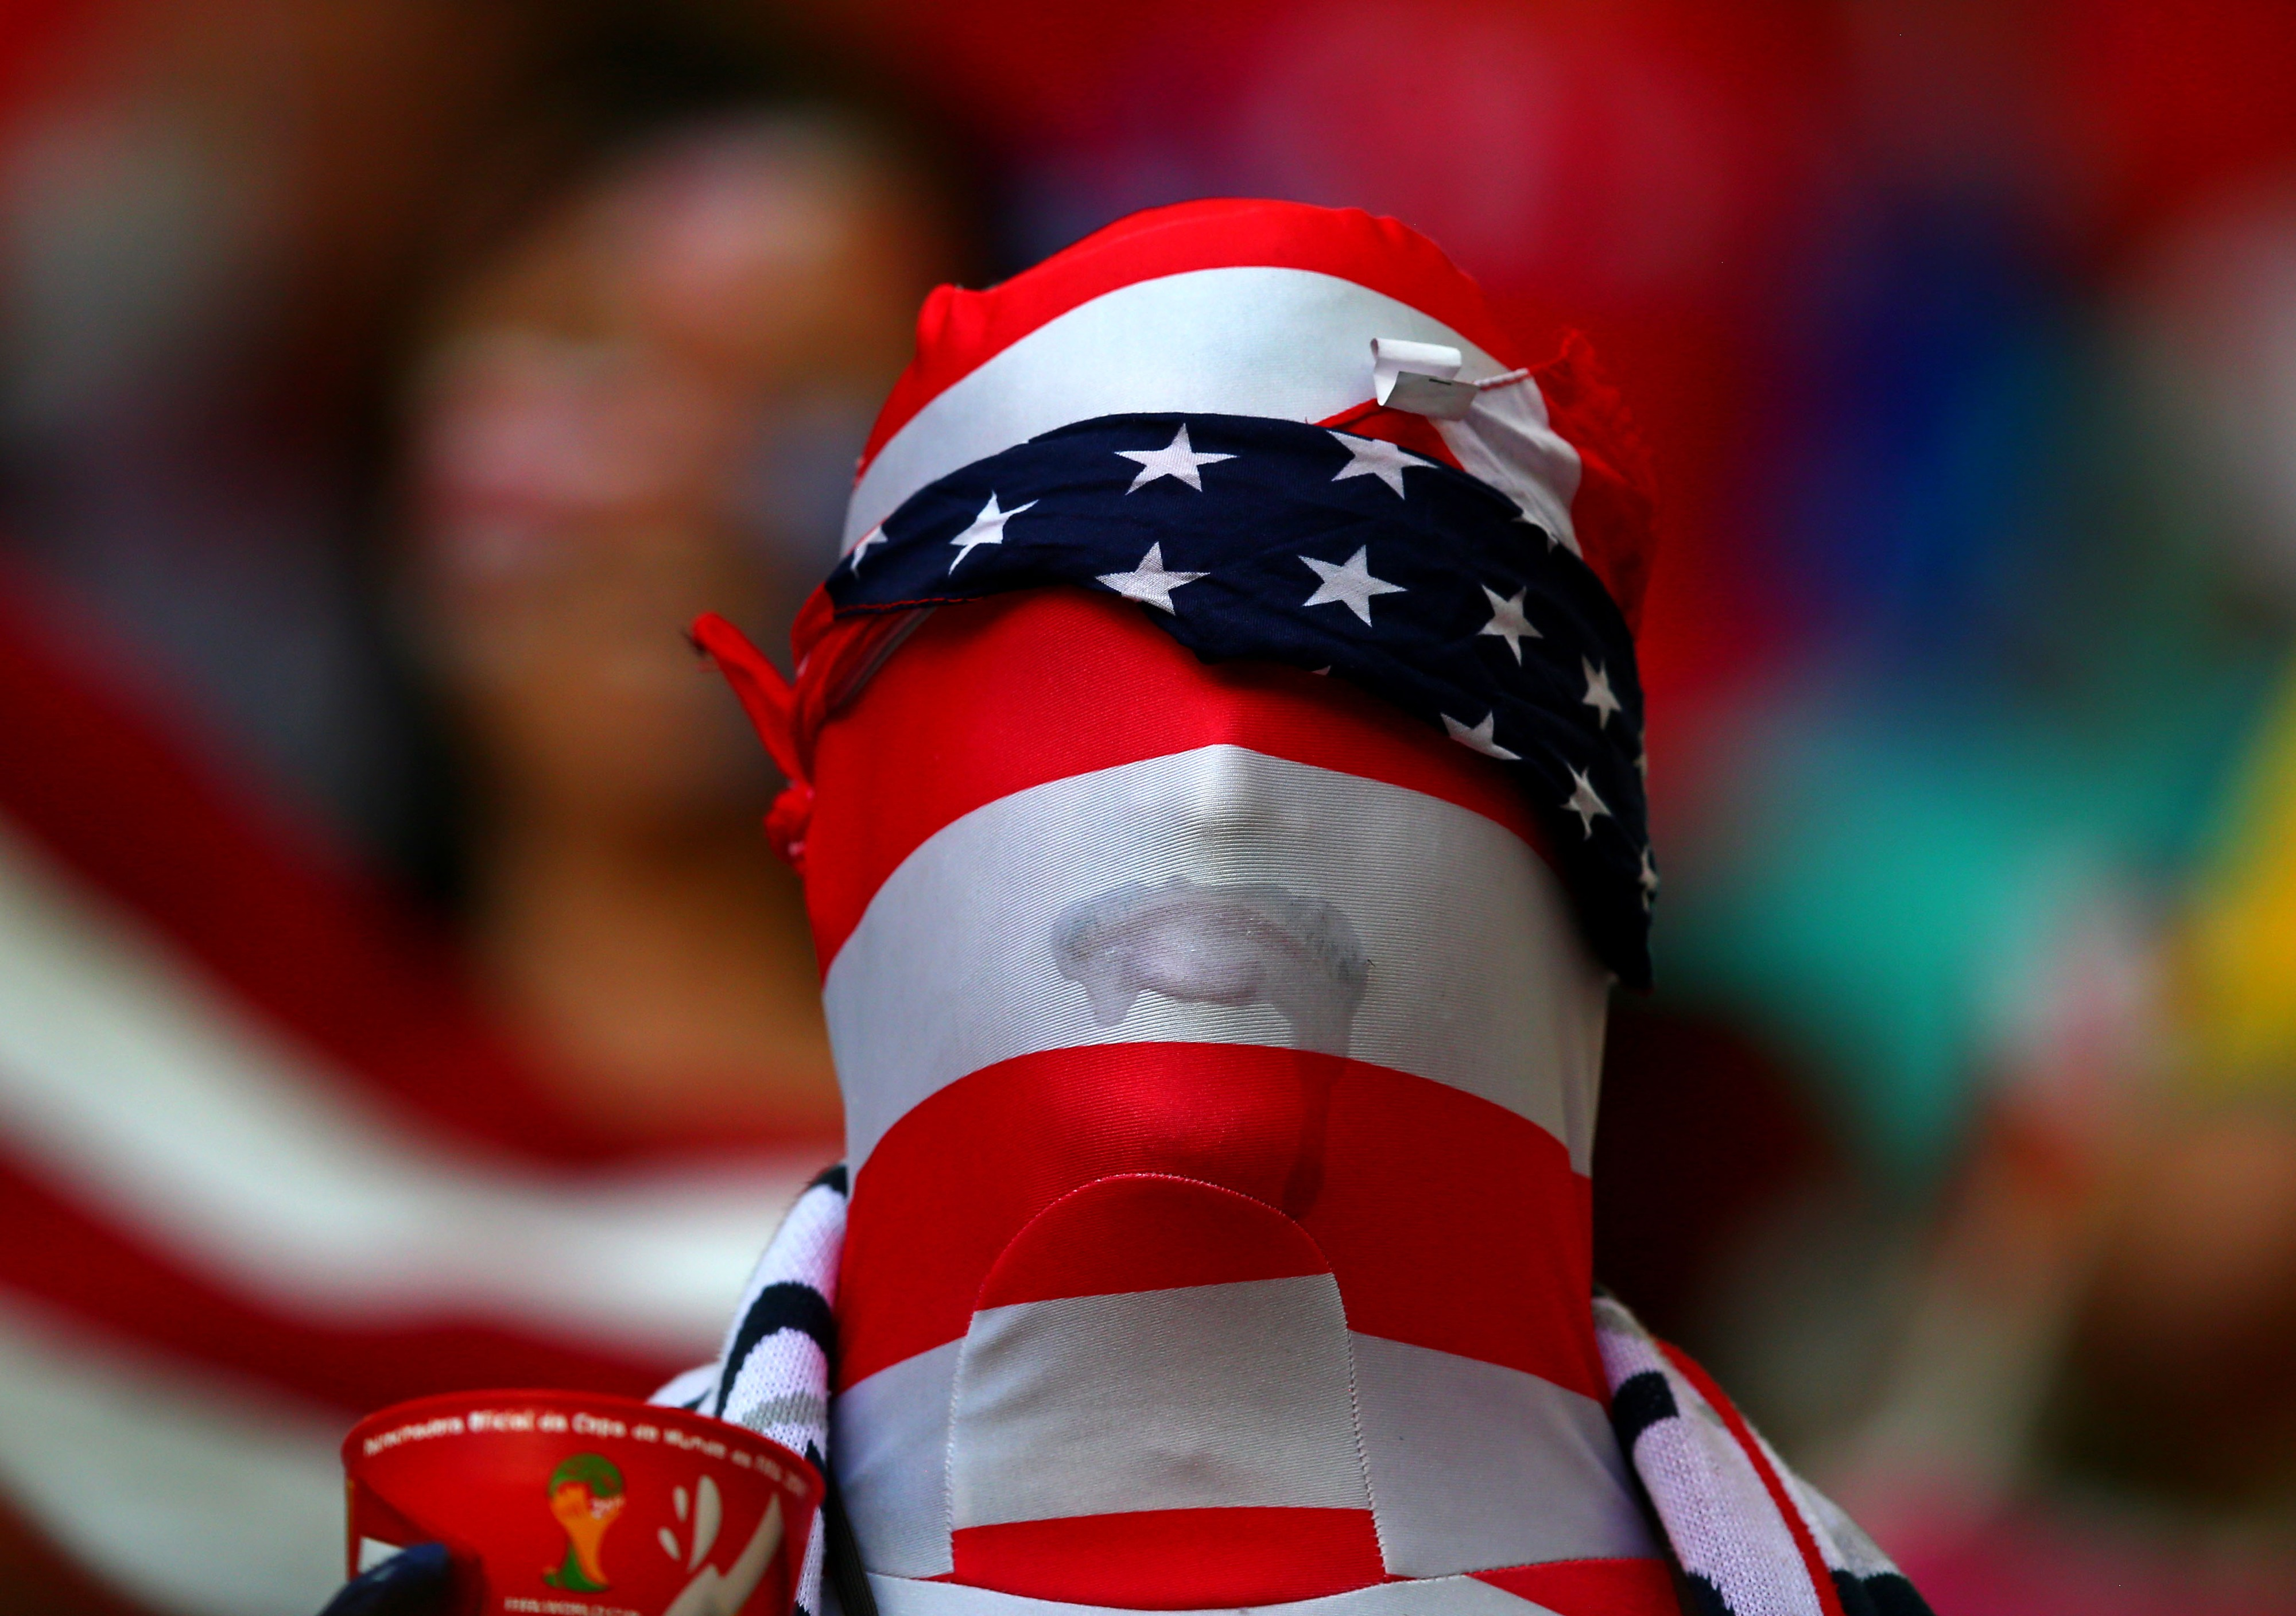 United States fans have a lot to be proud of and a fair amount to wonder about. Photo by Mark J. Rebilas - USA TODAY SPORTS